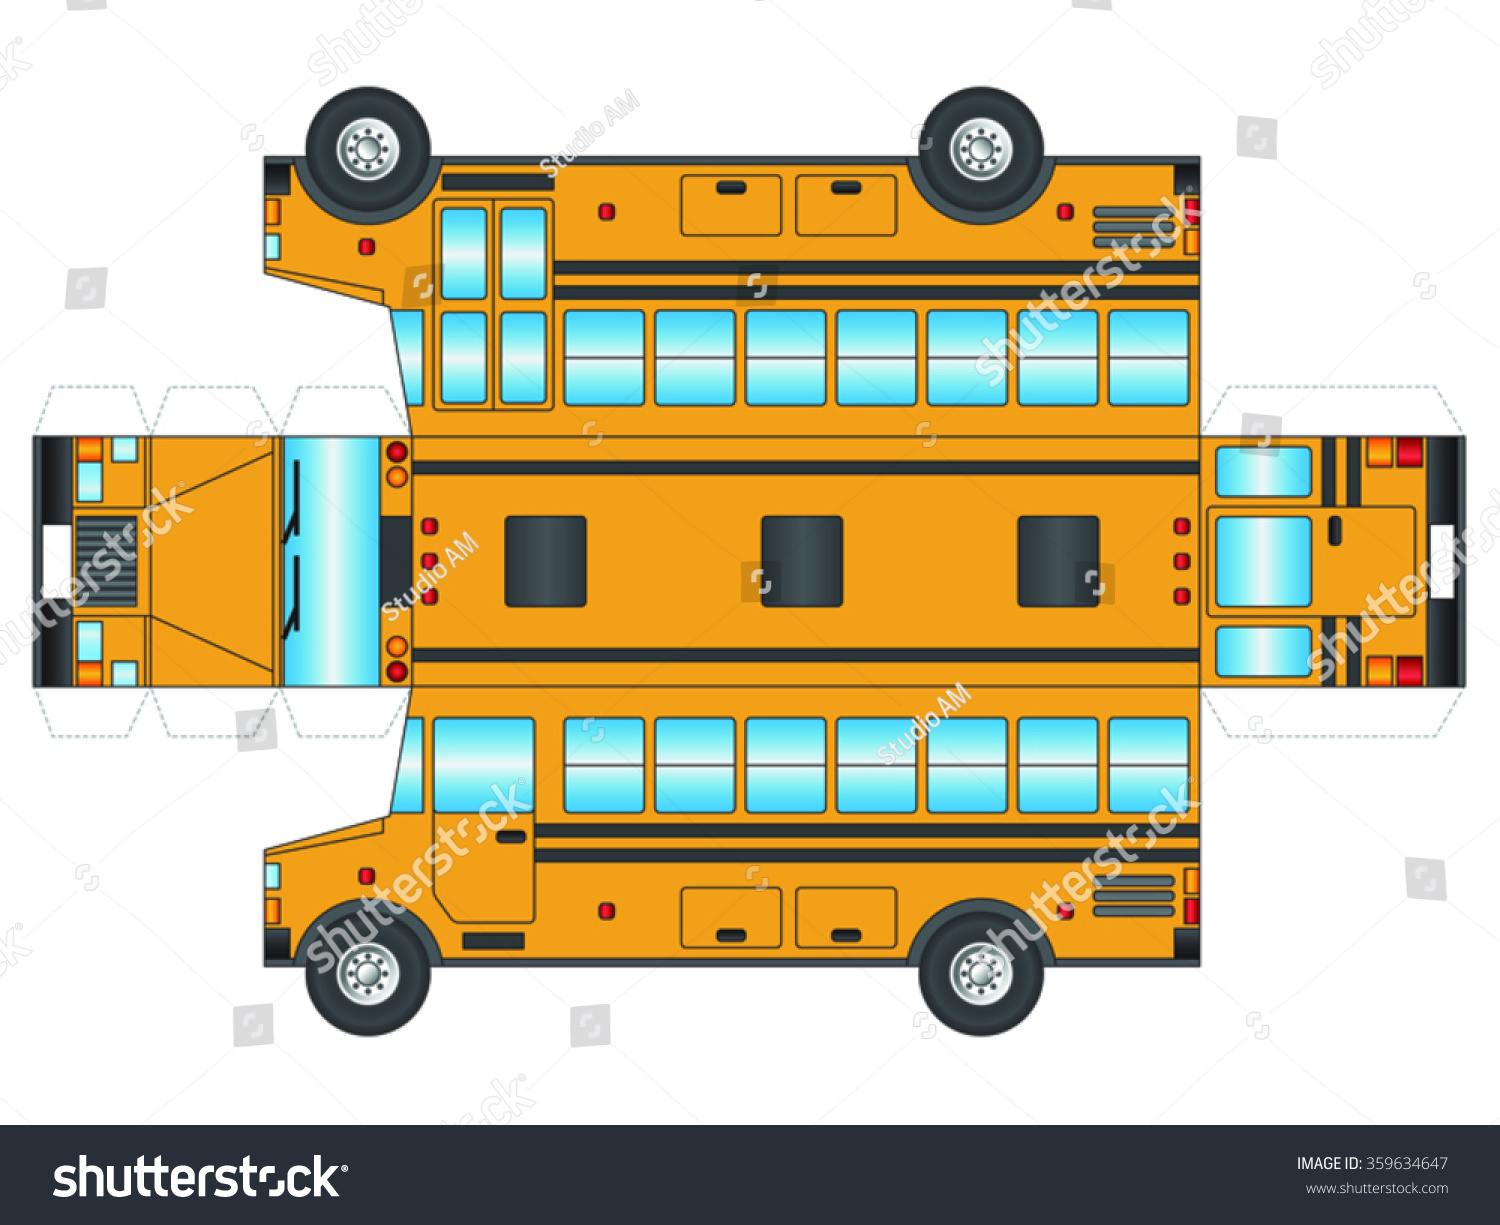 School Bus Outline Cut Out Glue Stock Vector 359634647 - Shutterstock